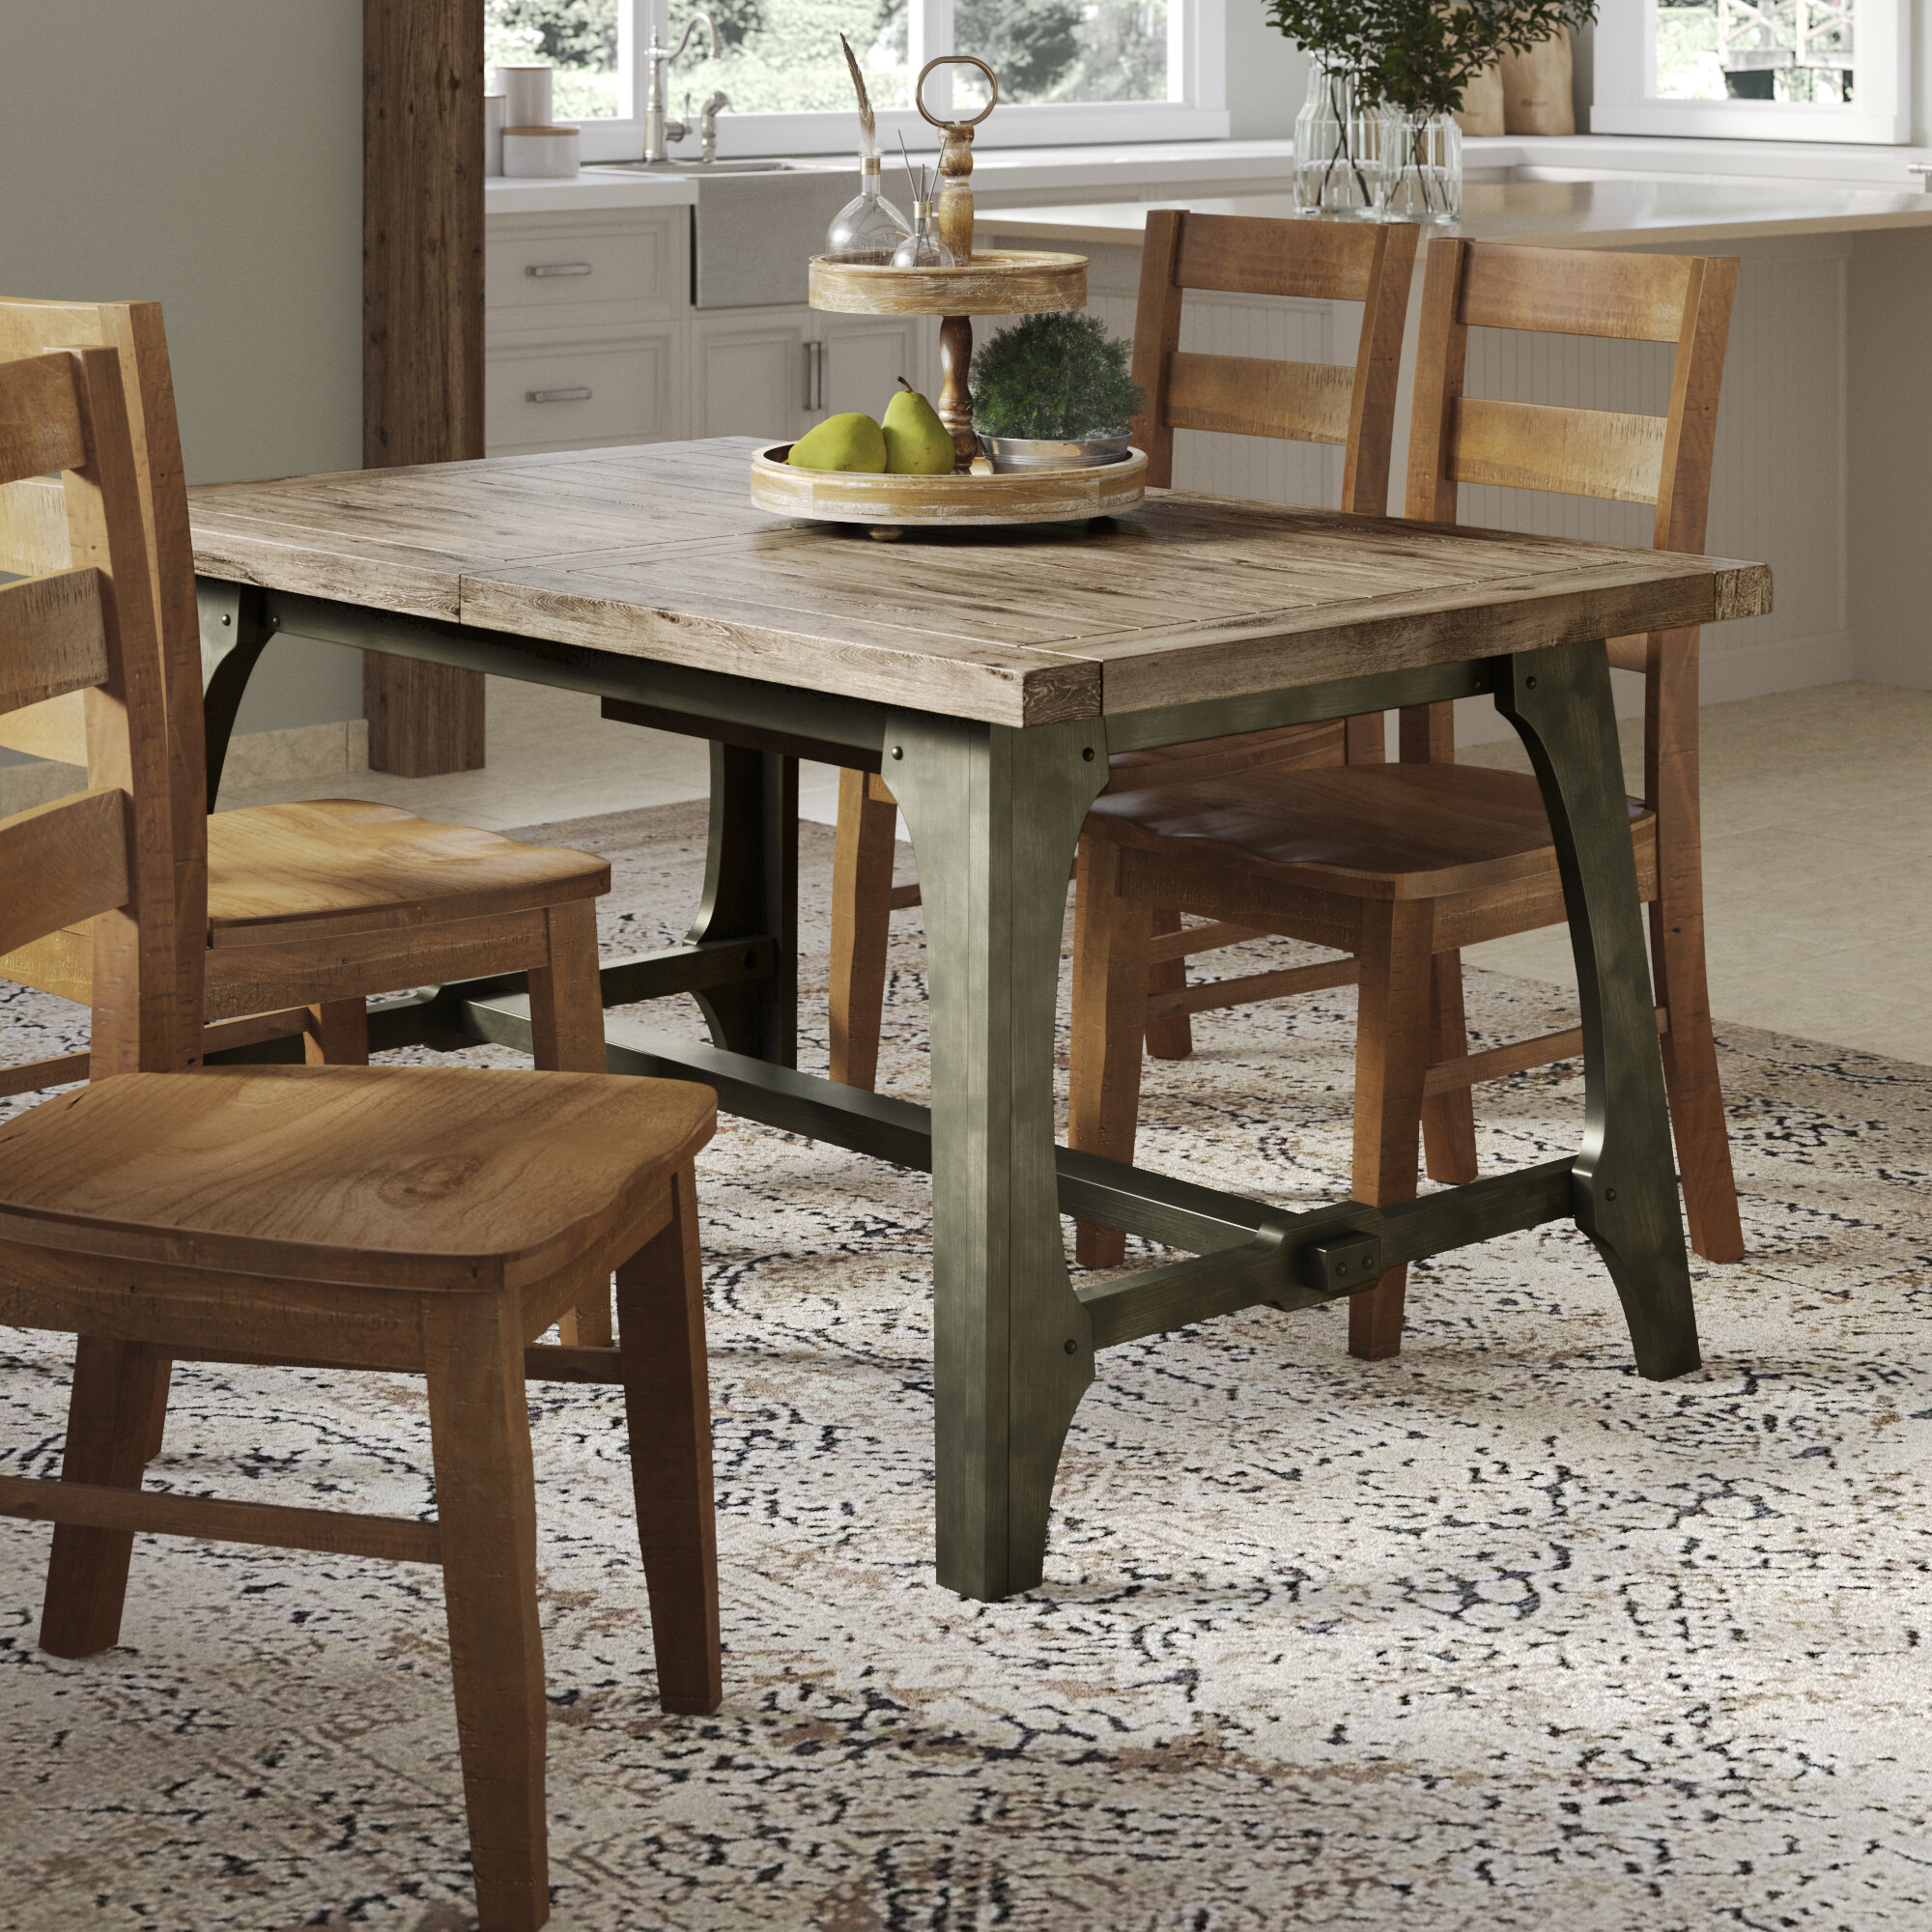 Wayfair & Casimir Extendable Solid Wood Dining Table